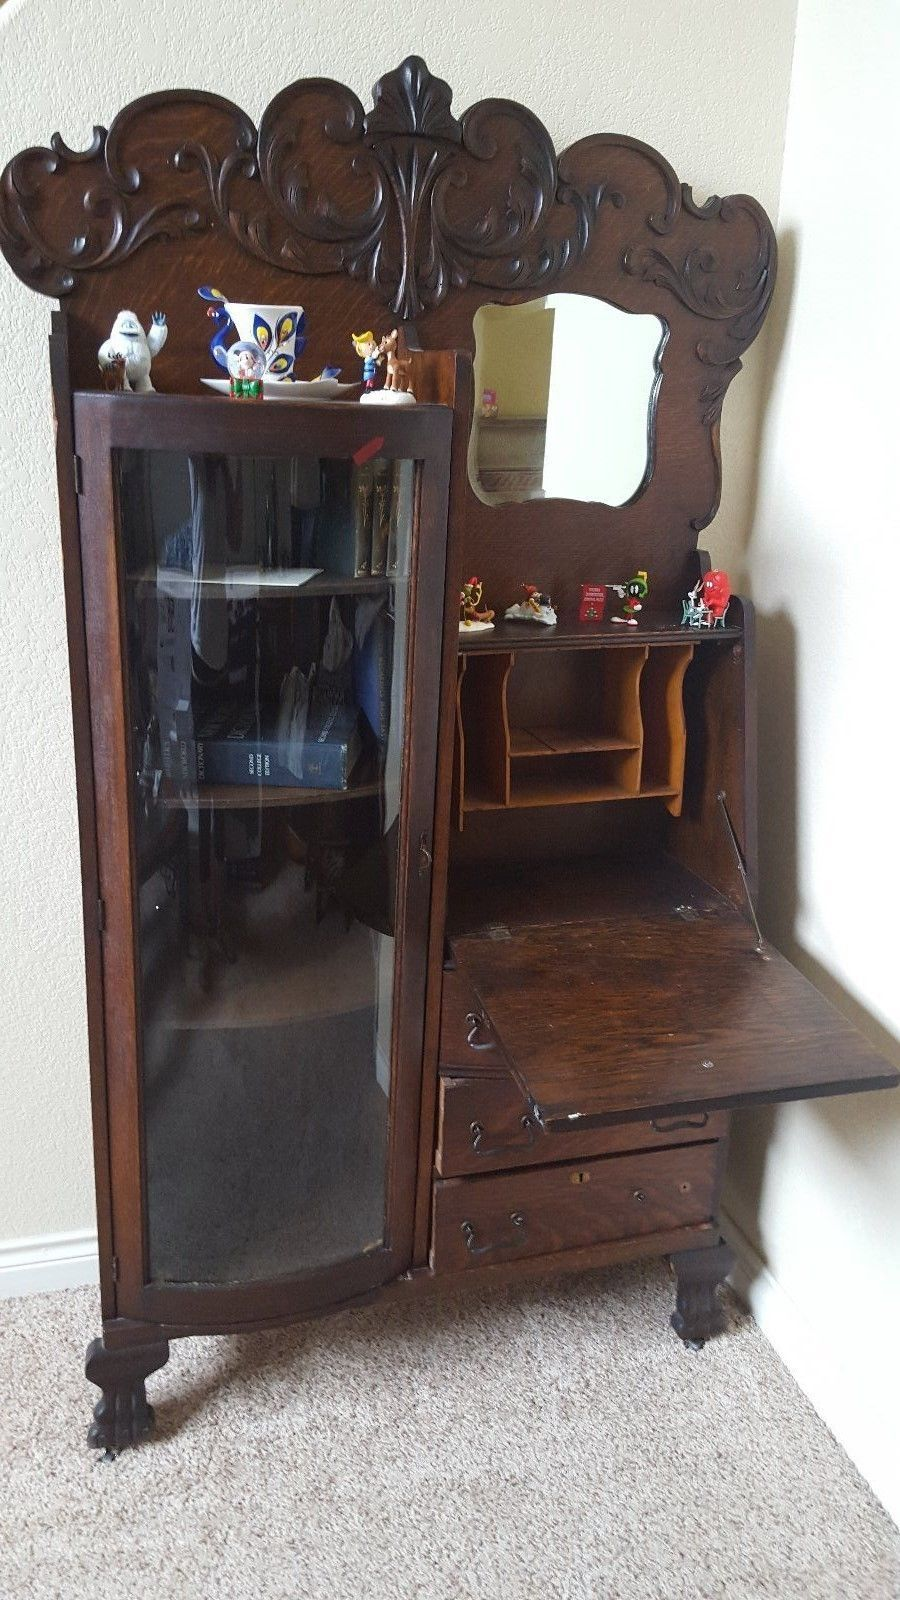 Condition This Piece Is In Great It Even Has The Original Shelve Pegs To Hold Wooden Shelves On Curved Gl Book Shelf Side